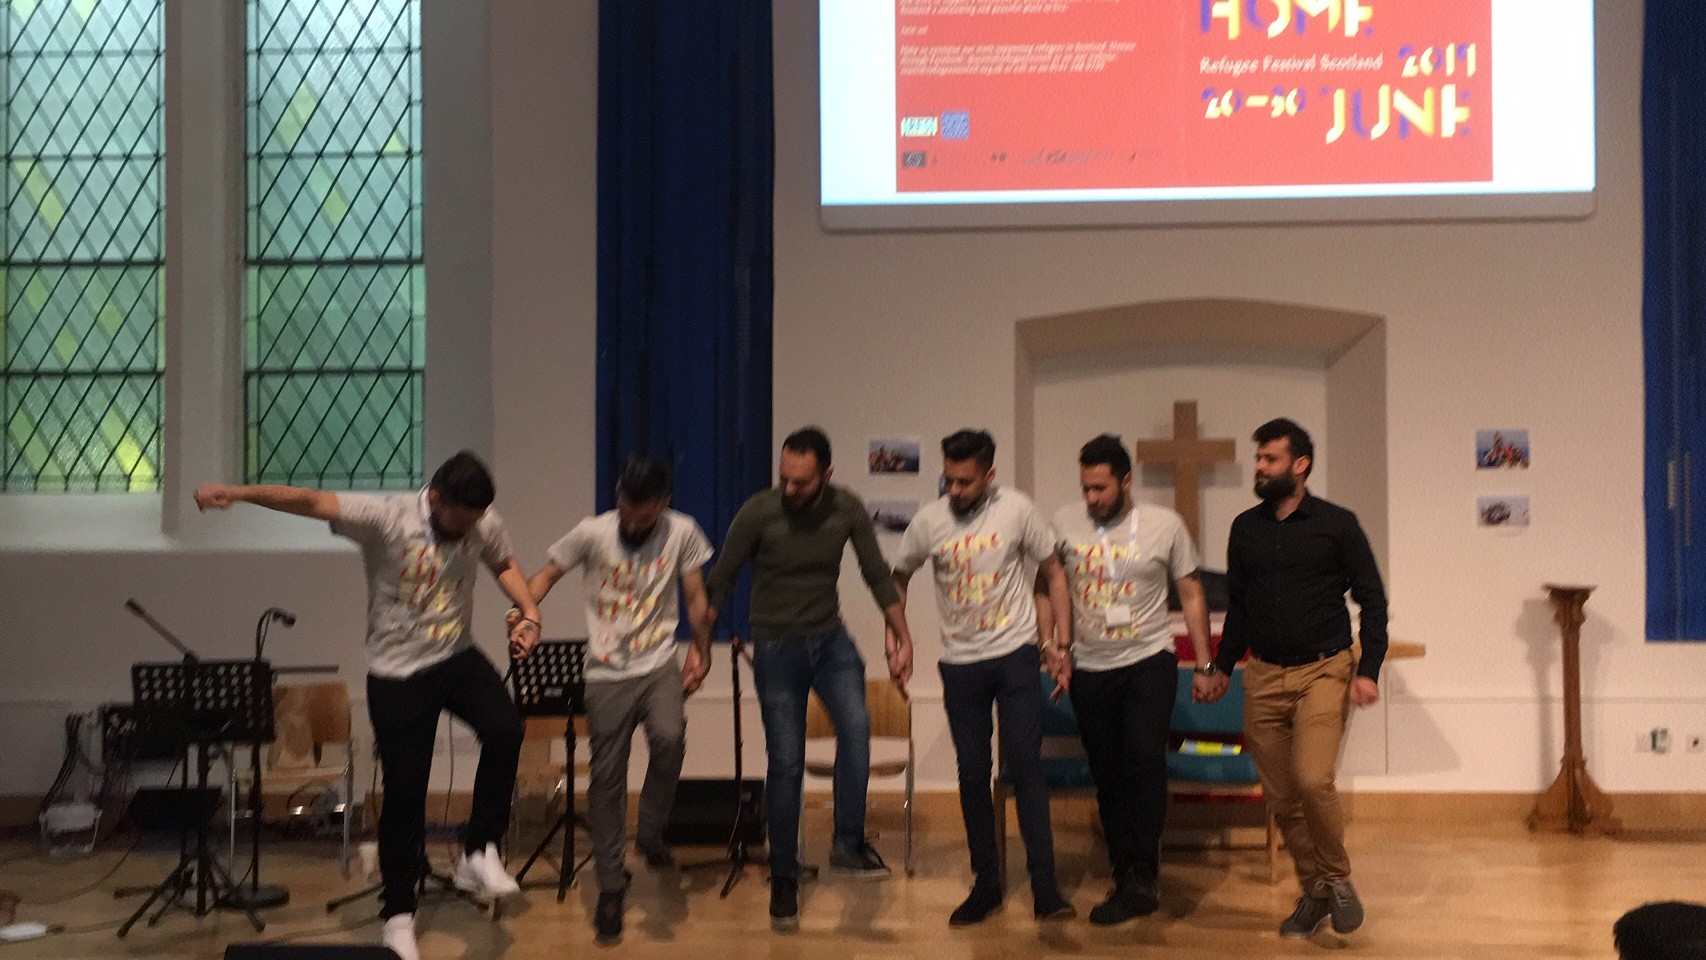 Refugee Festival Scotland: Dundee Launch Day!